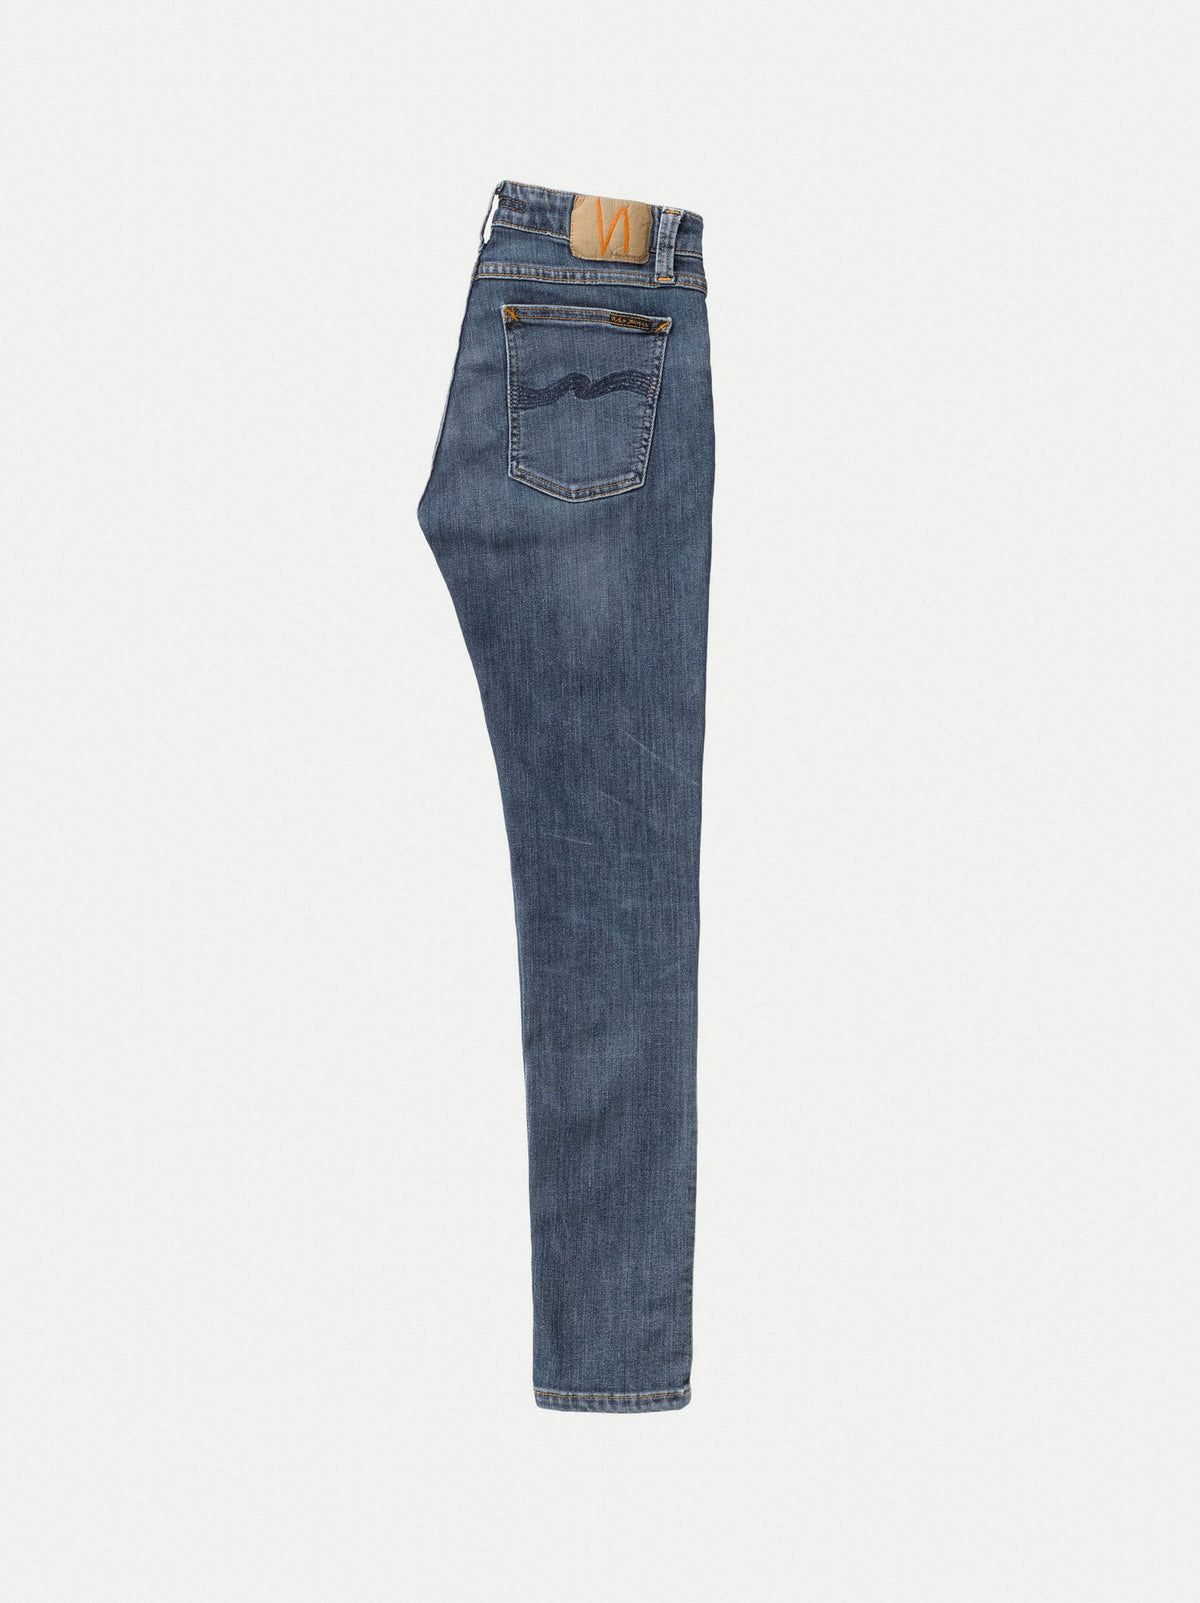 Skinny Lin | 12.5oz | Dark Blue Navy Stretch Denim